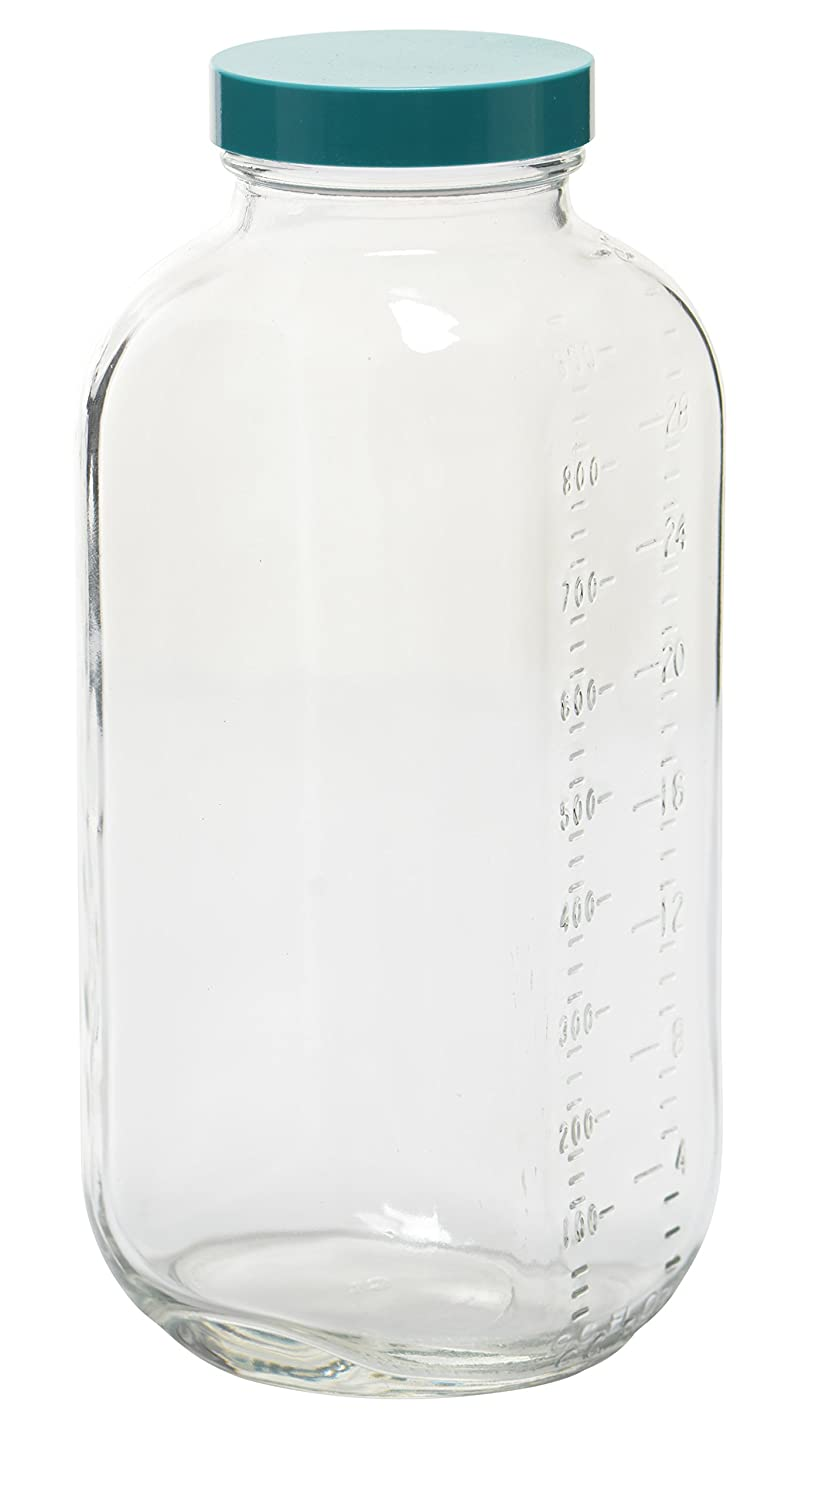 Vestil BTL-SG-G-32 Glass Square Graduated Bottle with Green Cap, 32 oz Capacity, Clear Vestil Manufacturing